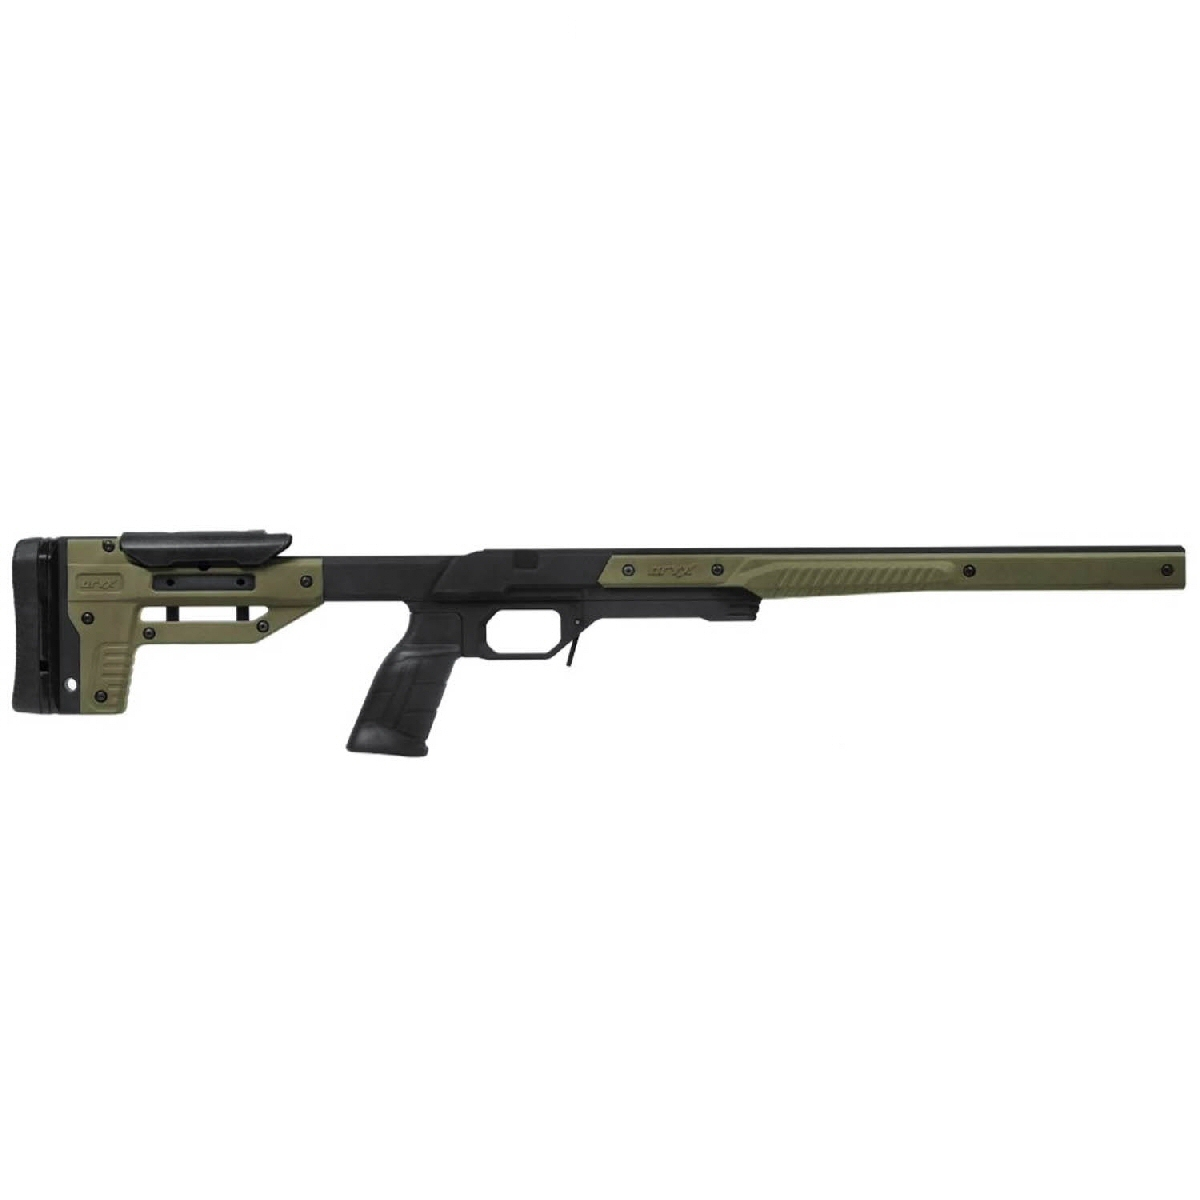 Oryx Chassis for Ruger American Short Action